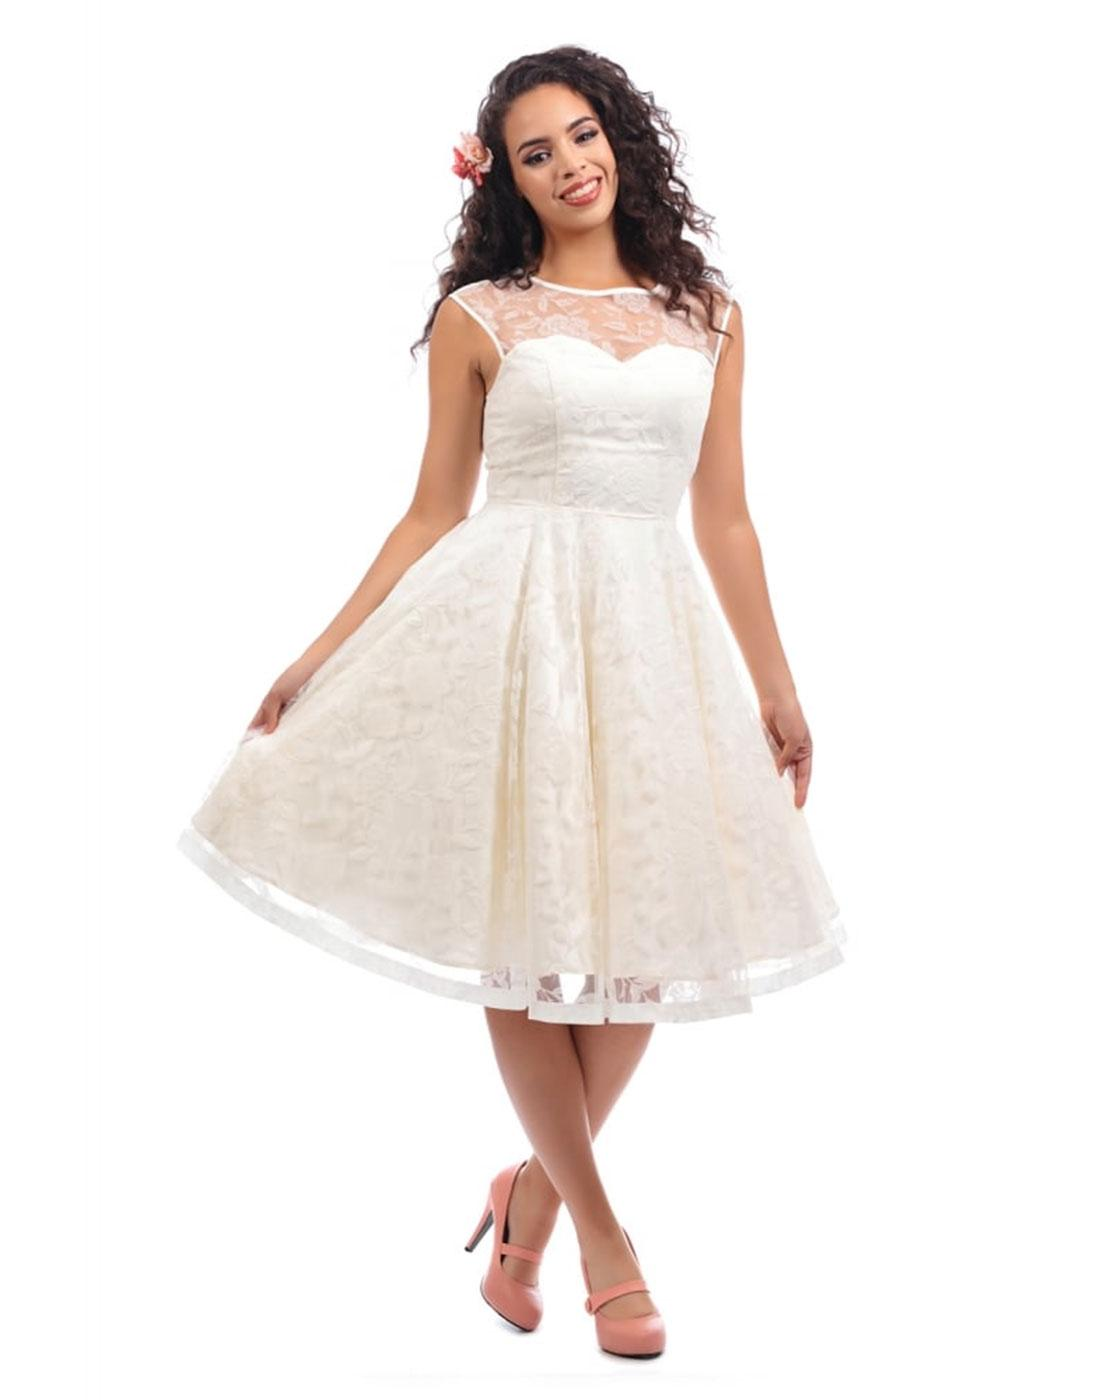 Faye COLLECTIF Vintage 50s Wedding or Prom Dress